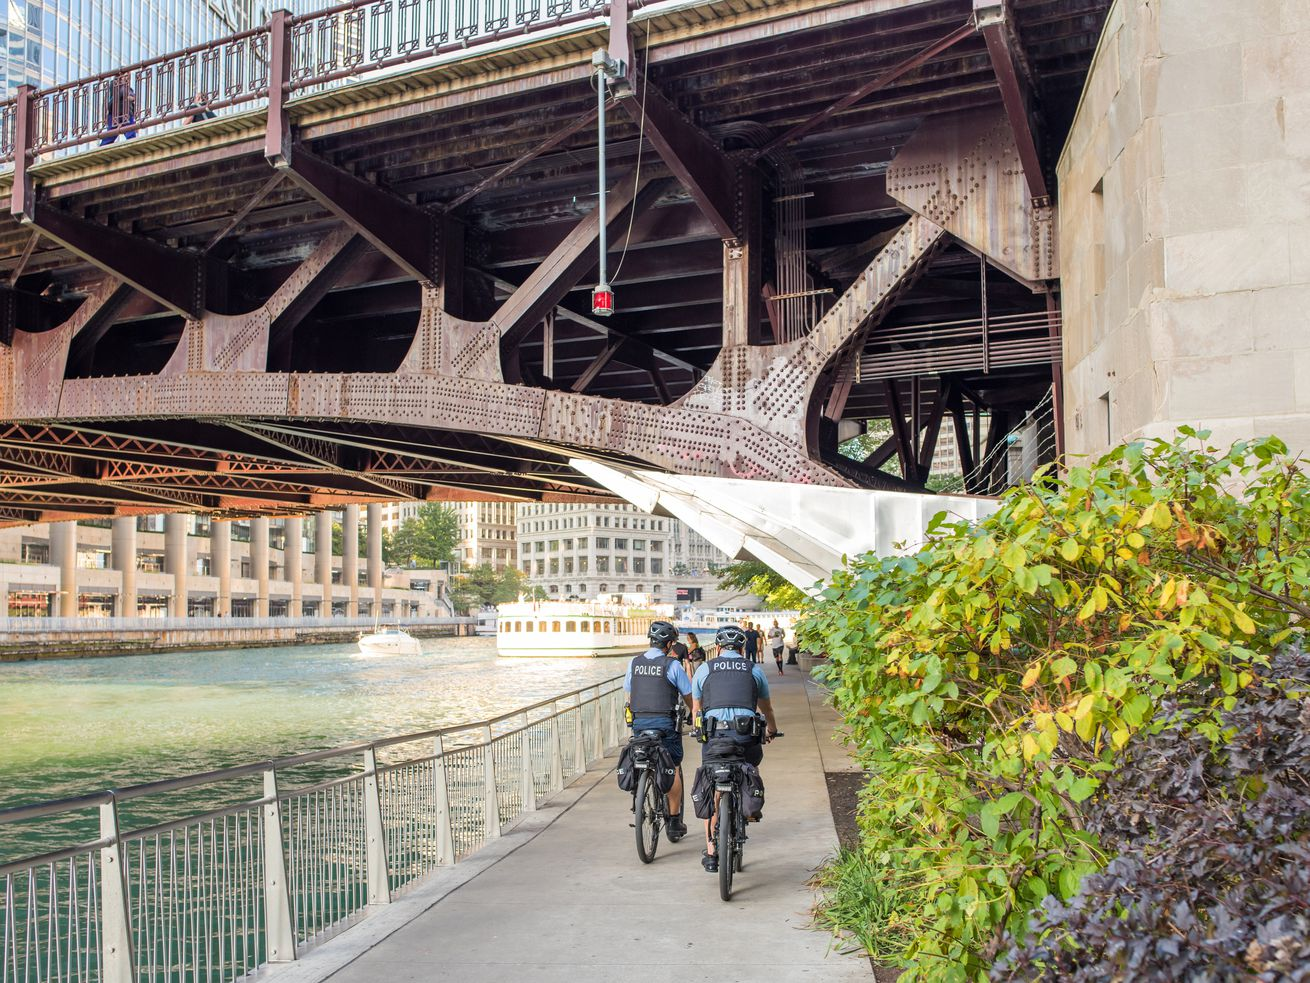 A group of Chicago Police Officers cruise the Riverwalk on bike.